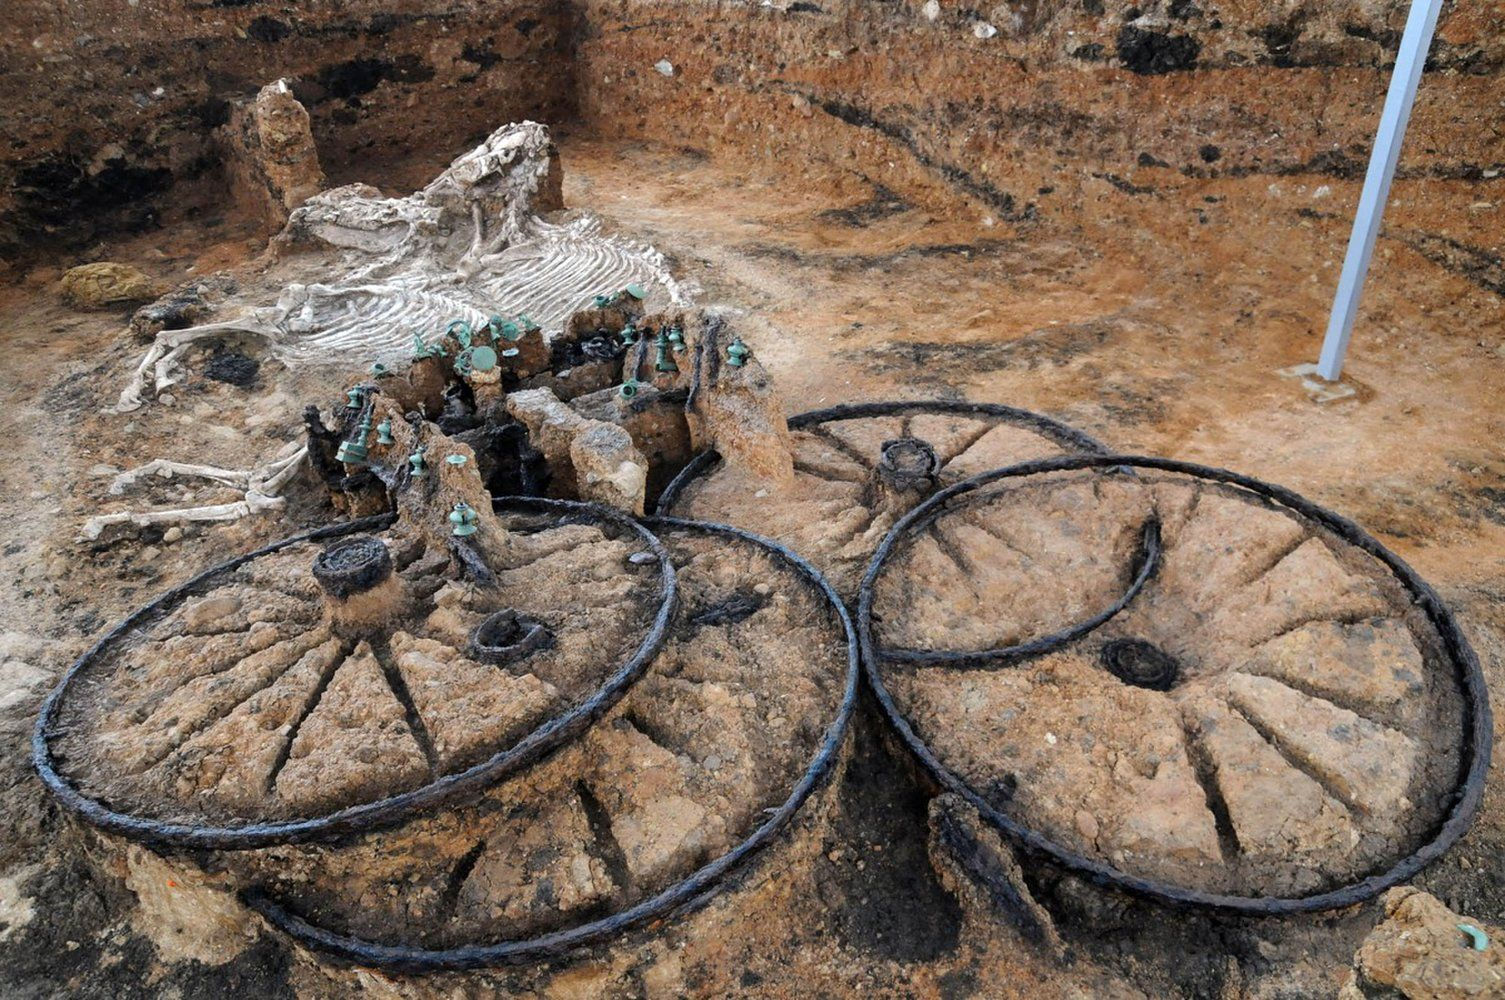 The Story Behind That 2 000 Year Old Thracian Chariot You Saw On